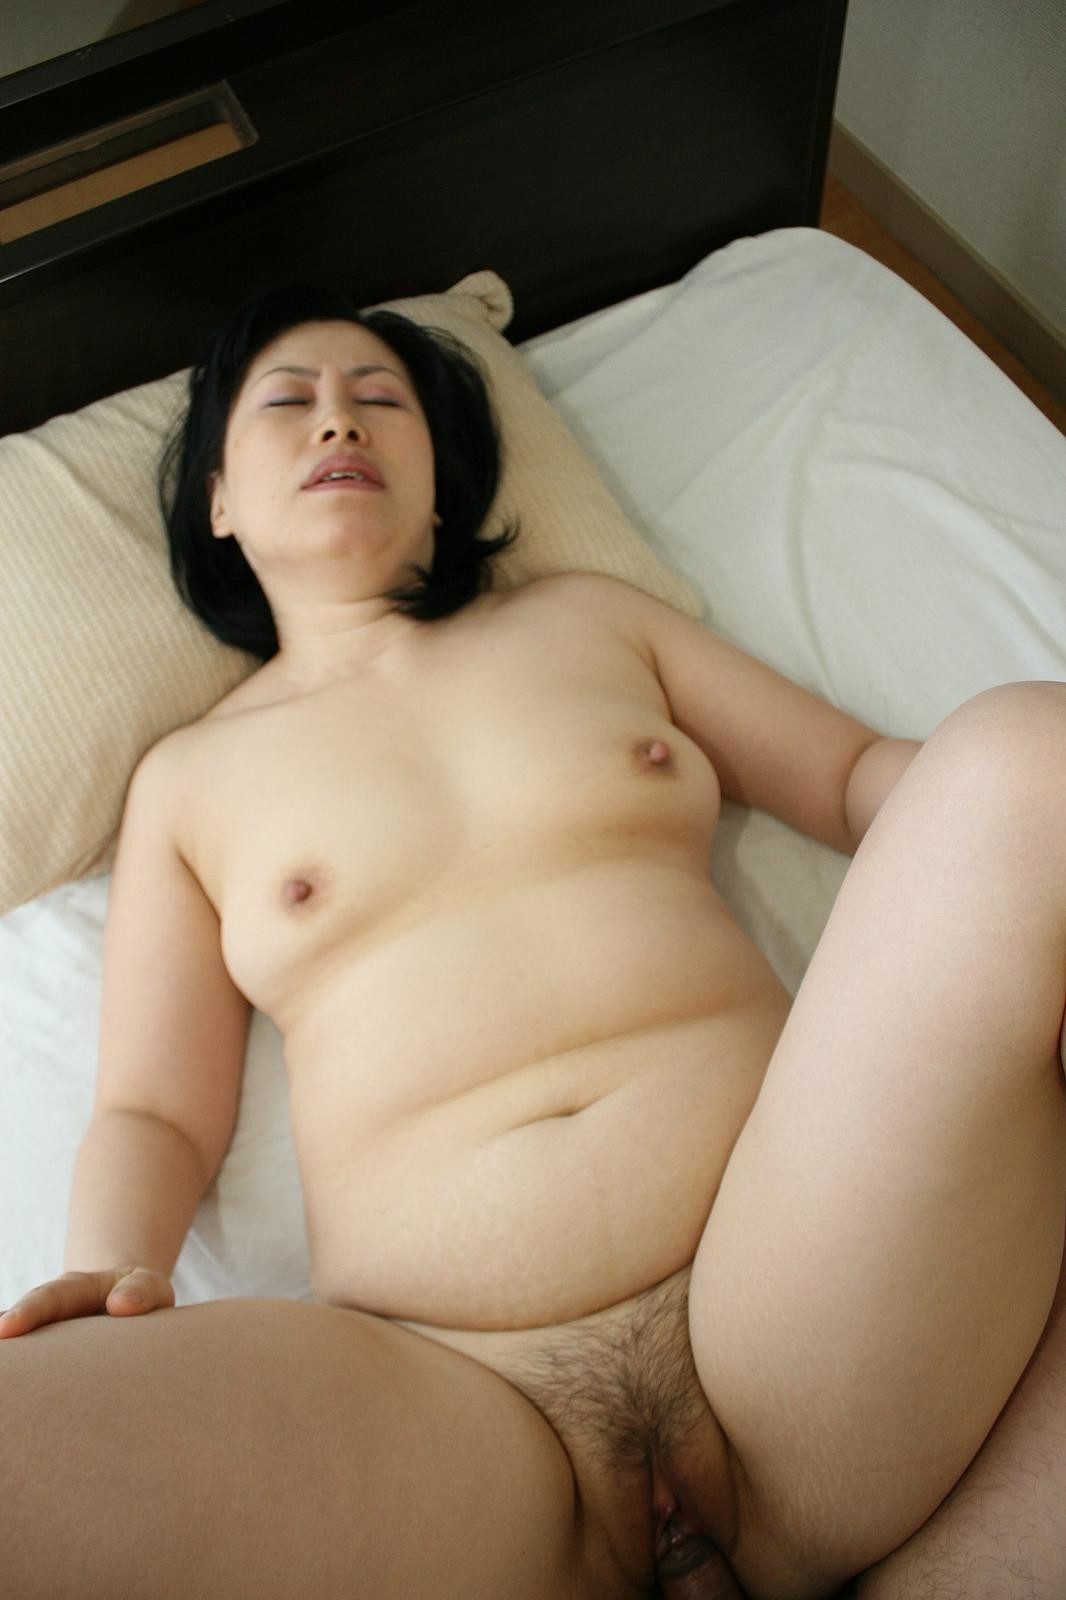 Kana miyagi japanese wife lovin that rough sex 2